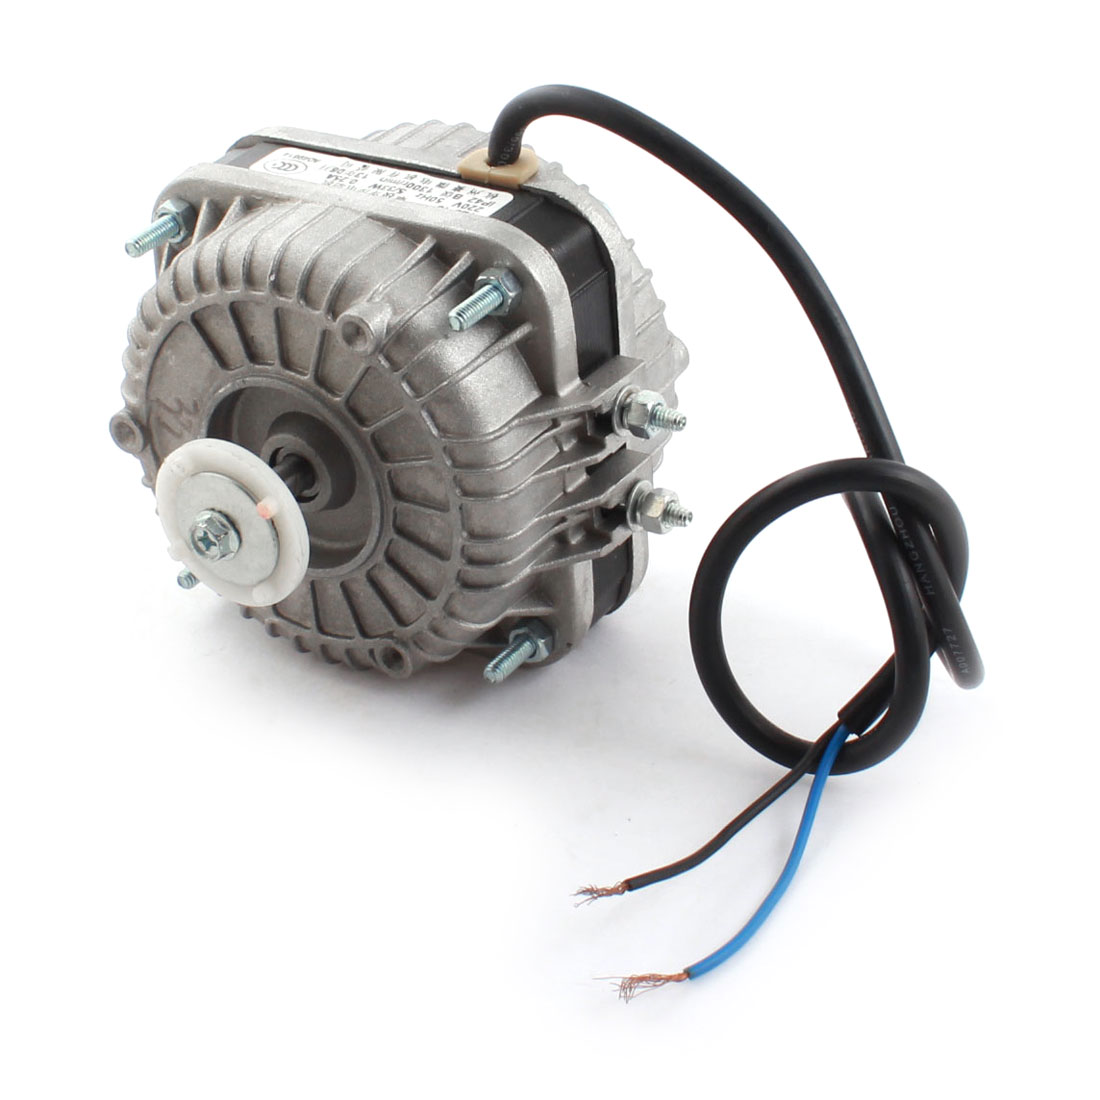 YZ5-13 AC 220V 0.25A 1300RPM Shaded Pole Motor for Freezer Refrigerator